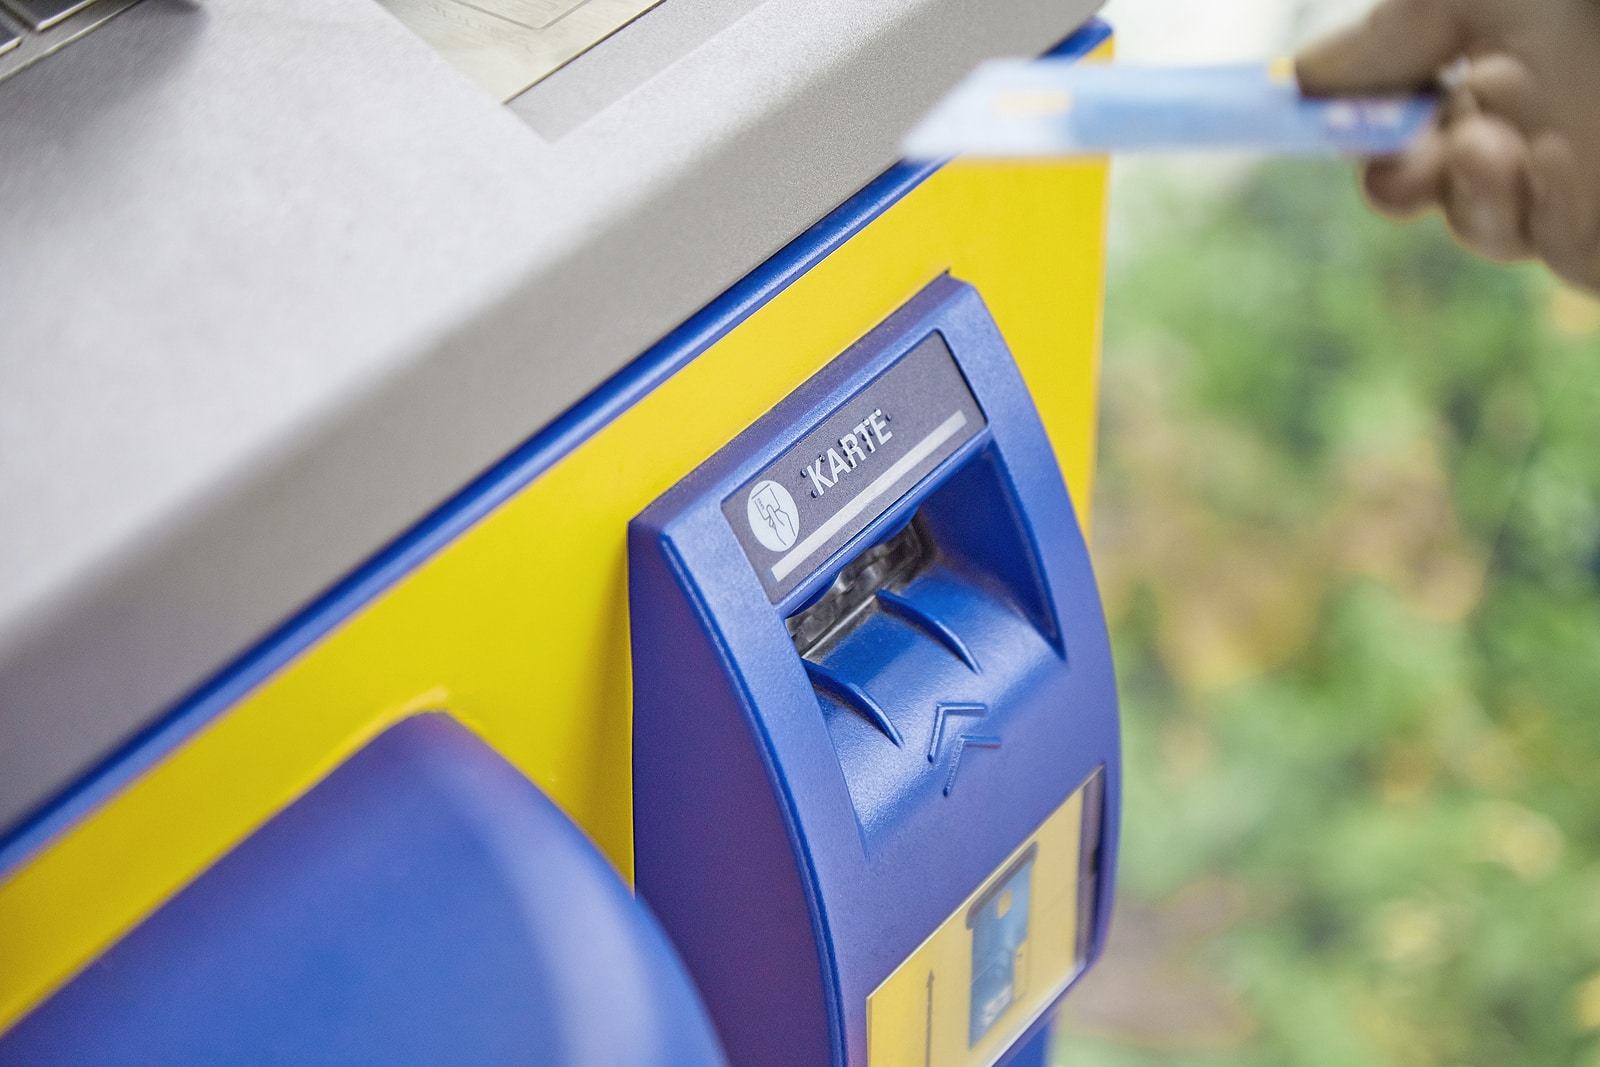 Close-up of an ATM system reading debit and credit bank cards